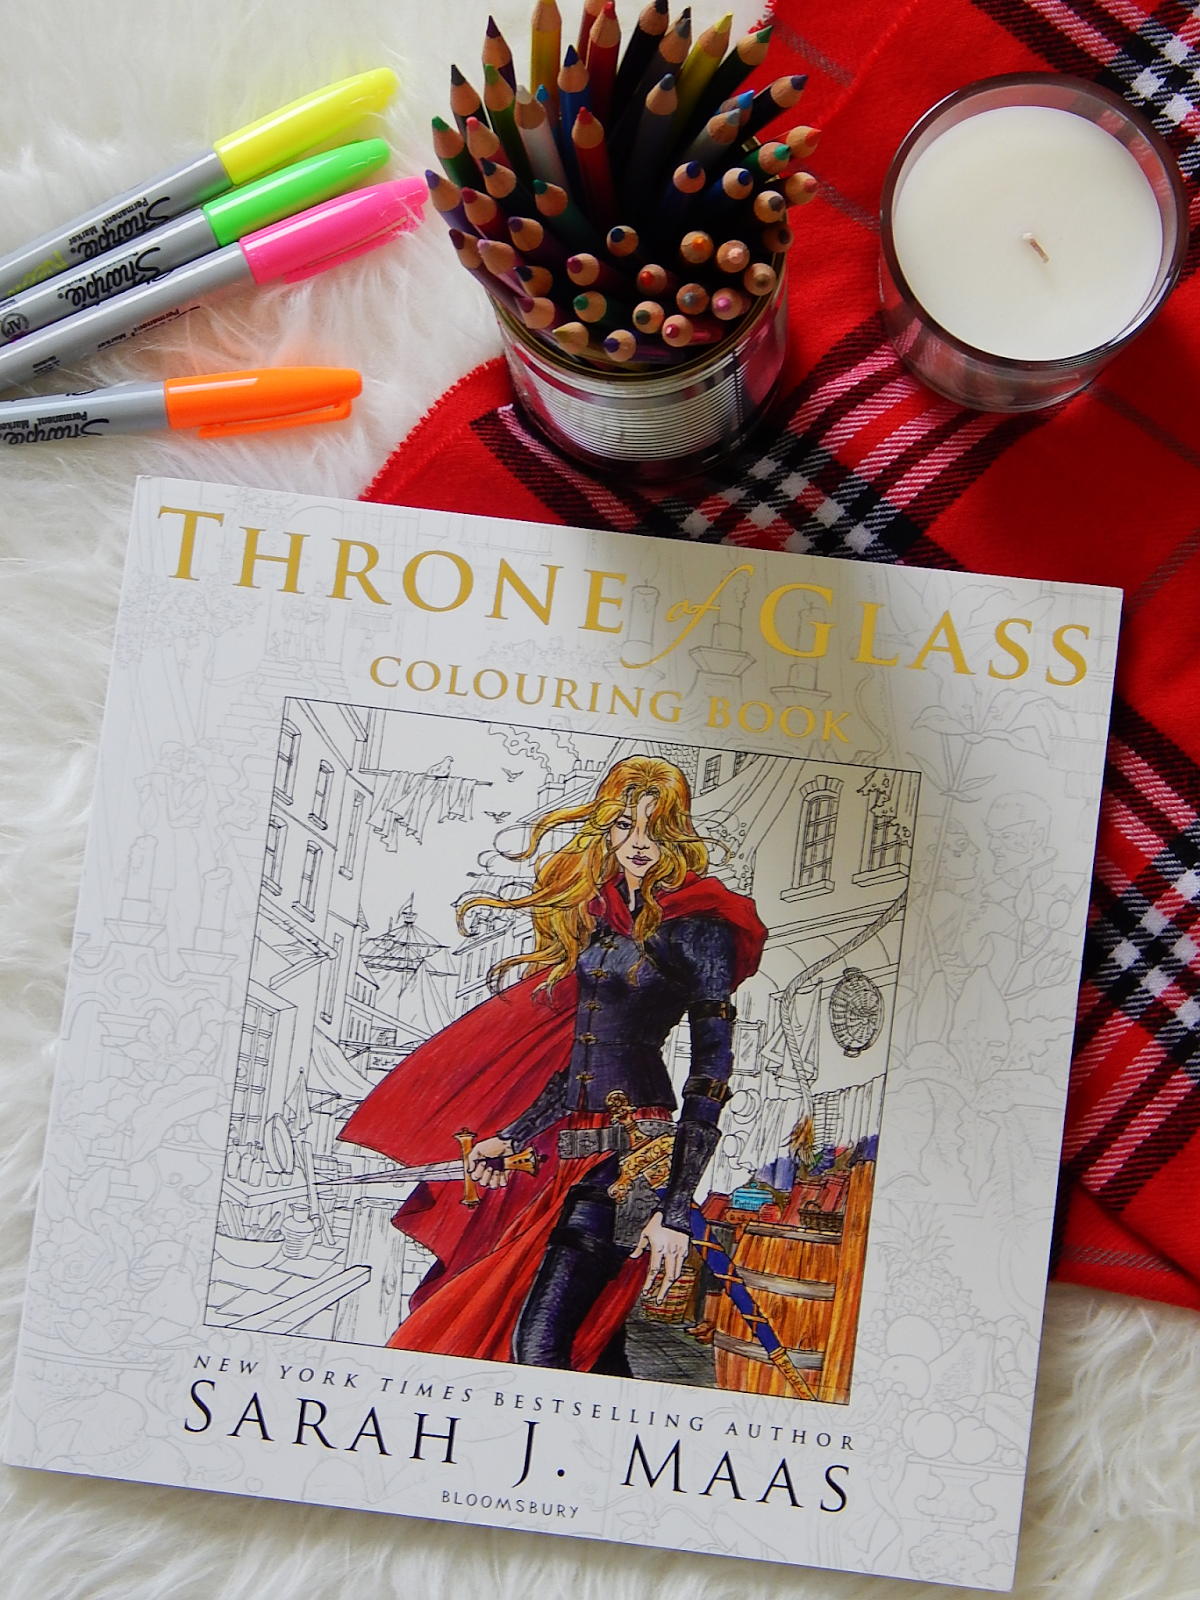 Throne Of Glass Colouring Book Review Sprinkled Pages A Book